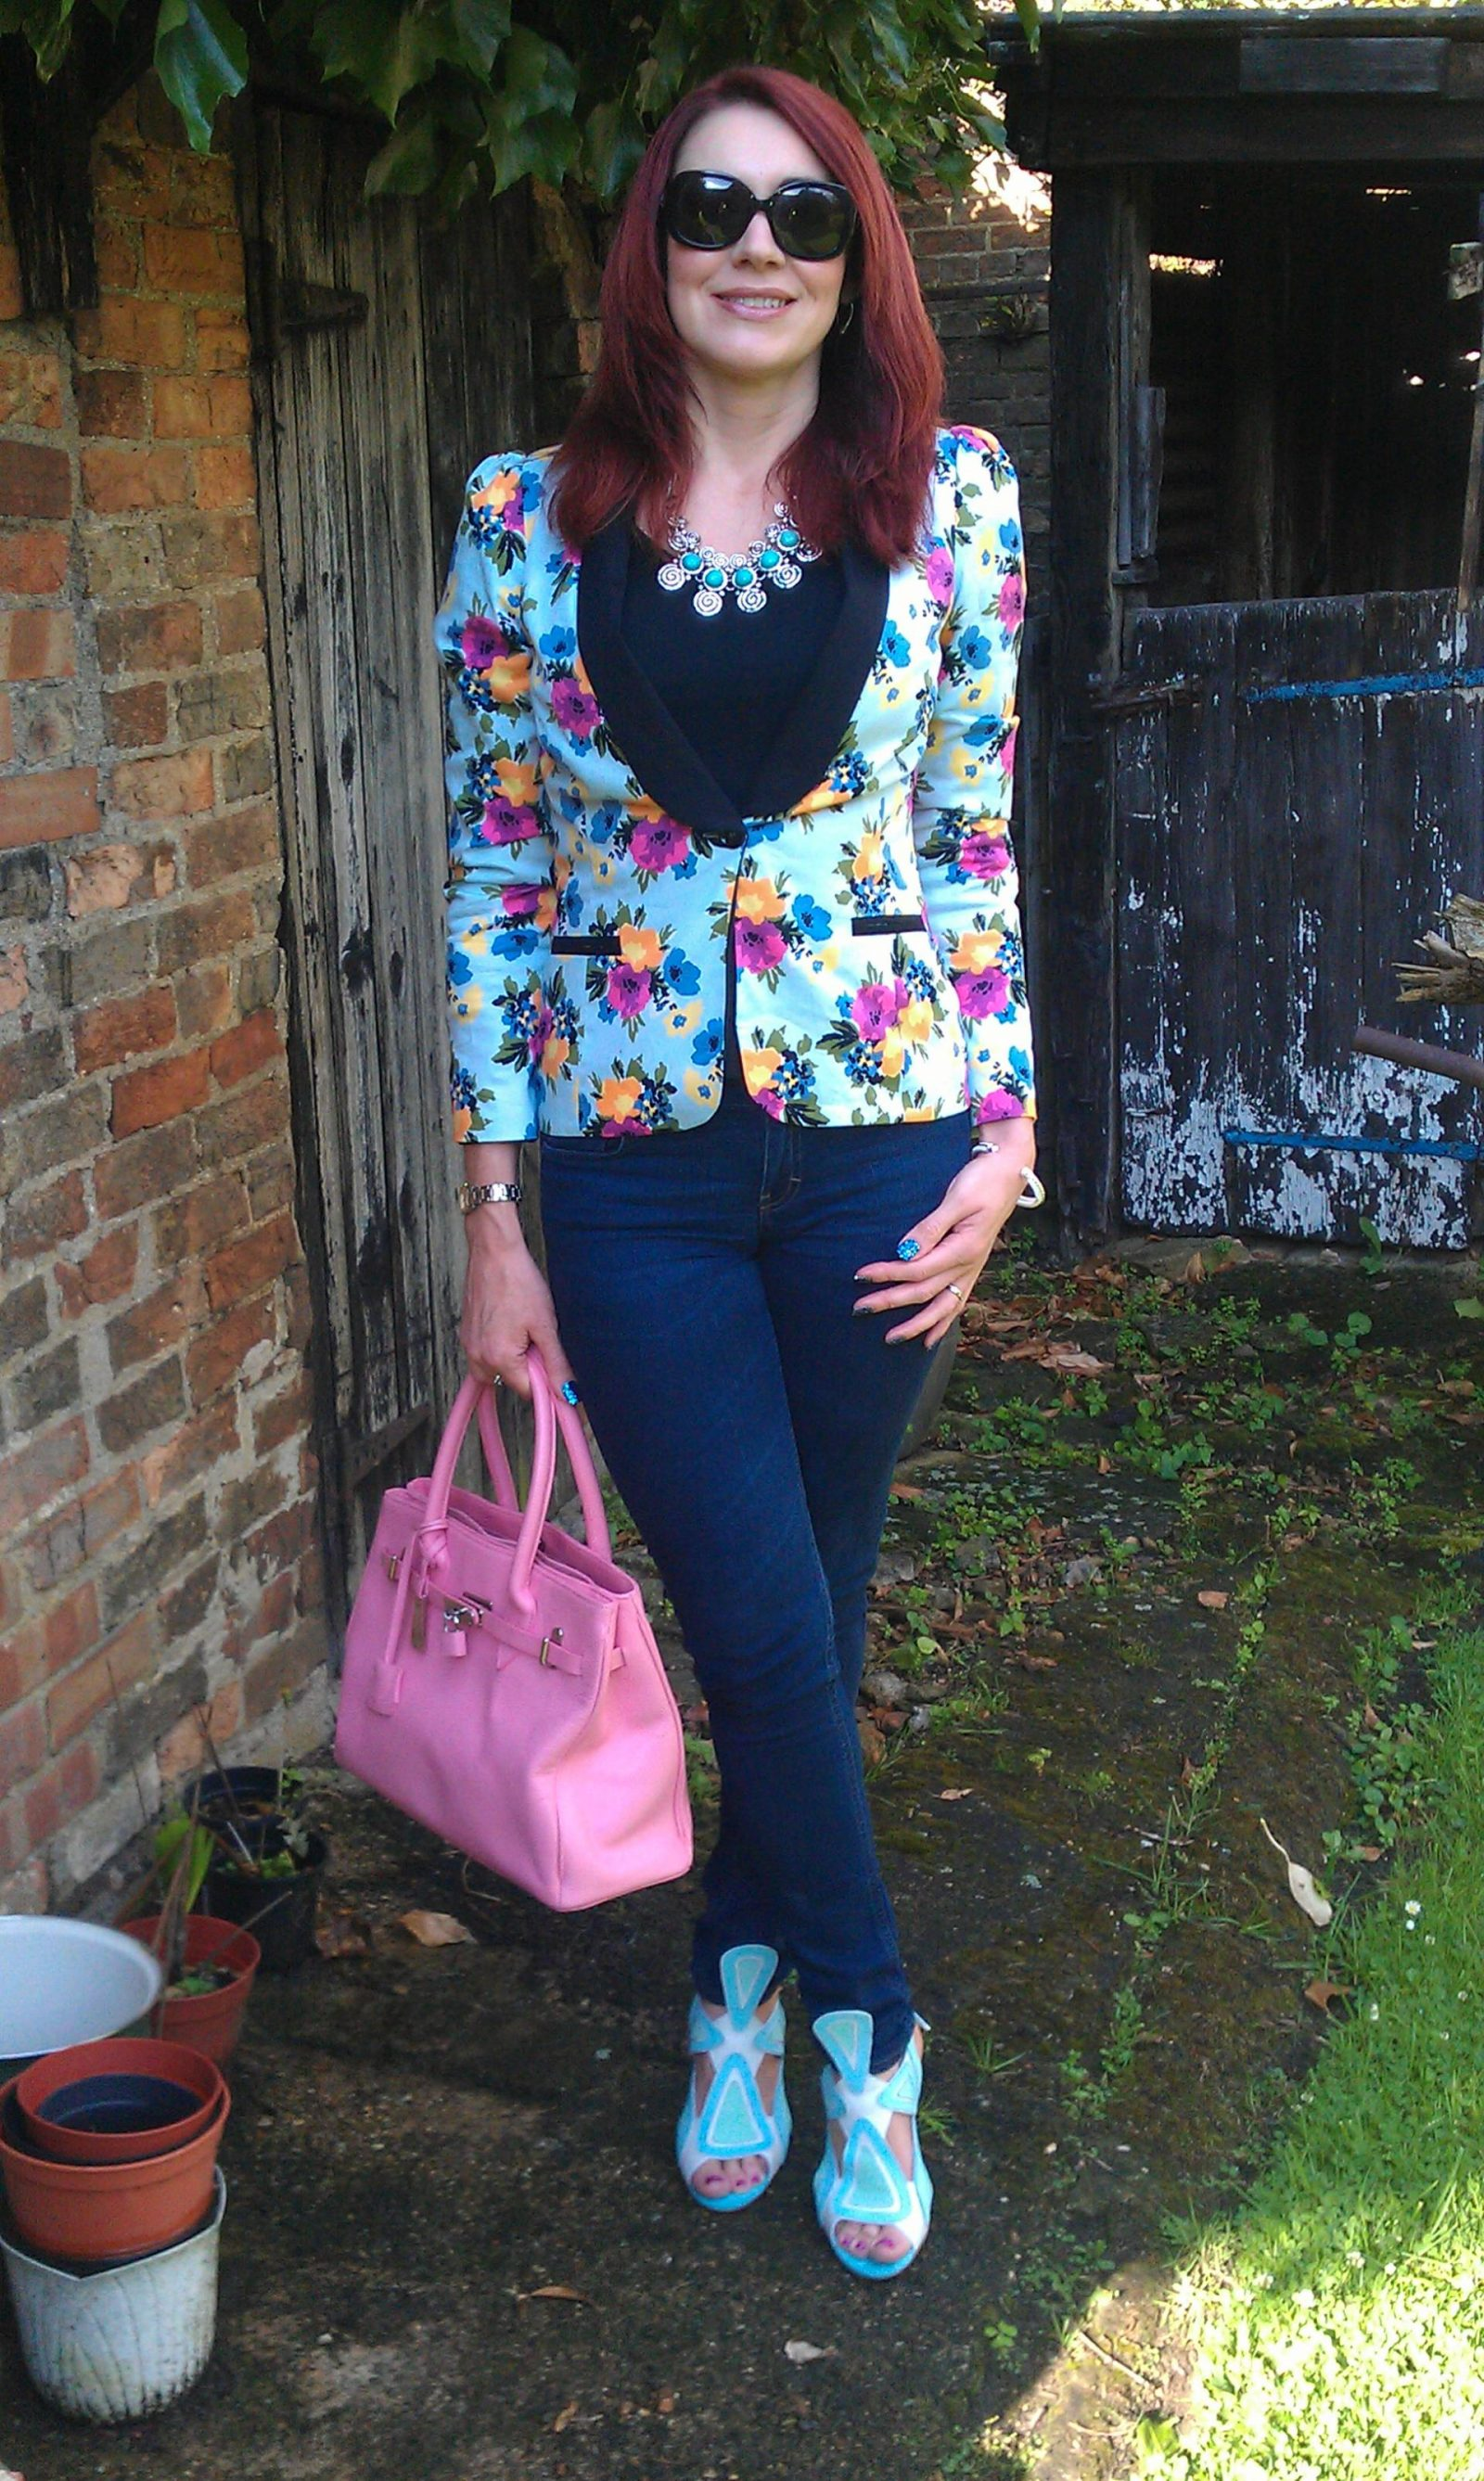 Julien Macdonald floral Print Jacket and Skinny Jeans, J by Jasper Conran pink tote bag, Strutt Couture blue sandals